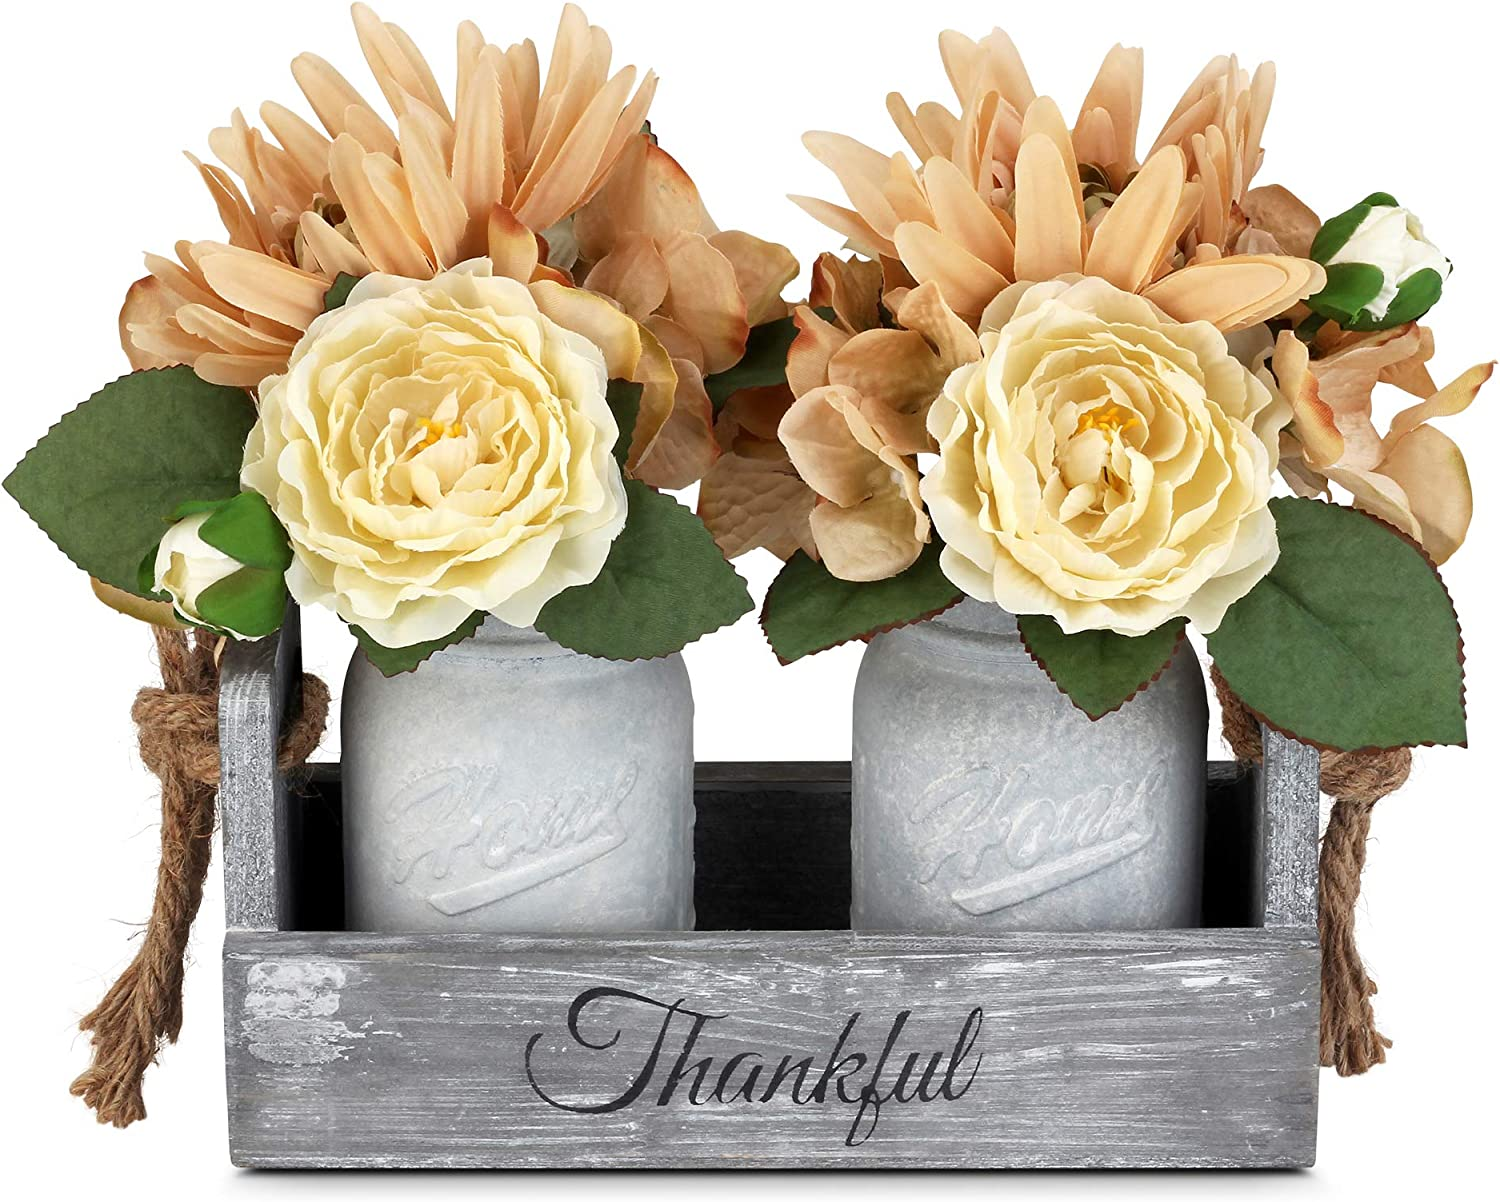 BeSuerte Decorative Mason Jar Centerpiece, Rustic Wood Tray Home Decor with 2 Mason Jars,Rose Bouquet Flowers for Dining Room,Living Room,Kitchen,Office,Coffee Table,Utensils Holder, White